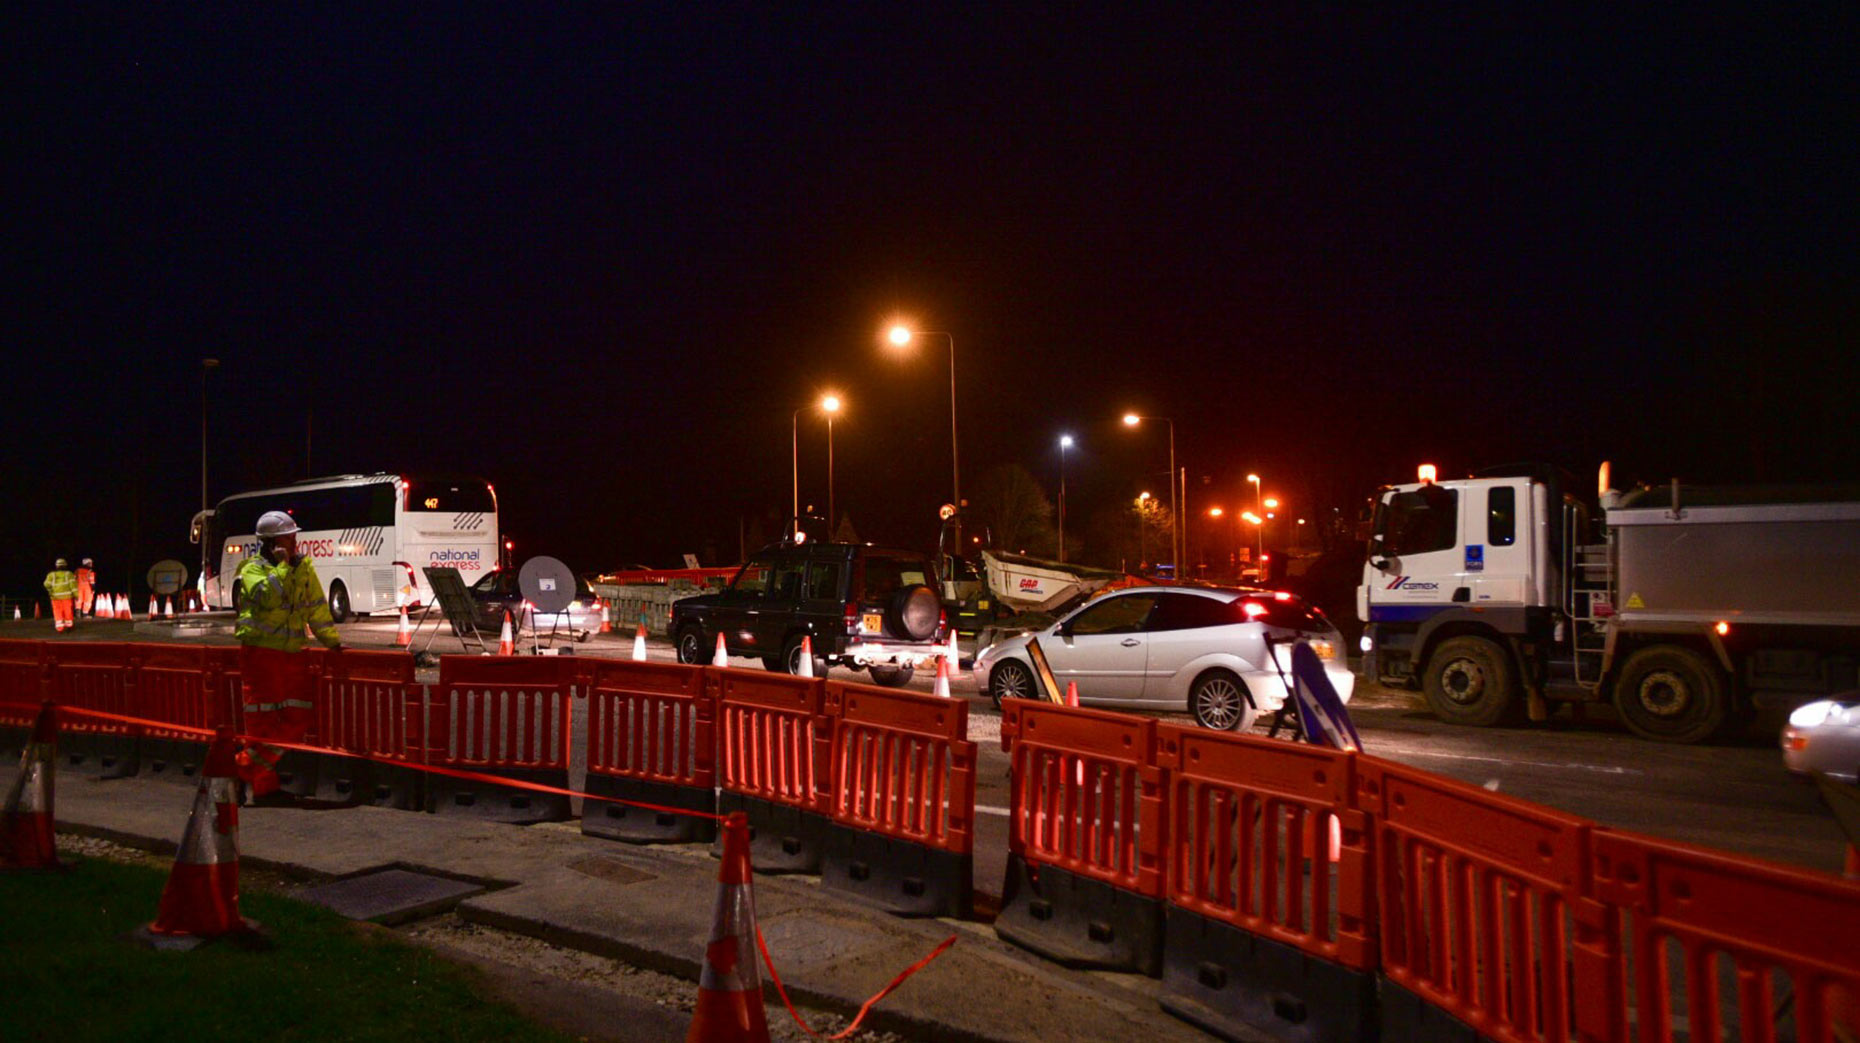 Overnight road closures on Canwick Road and Canwick Hill will continue for another month. Photo: Steve Smailes for The Lincolnite